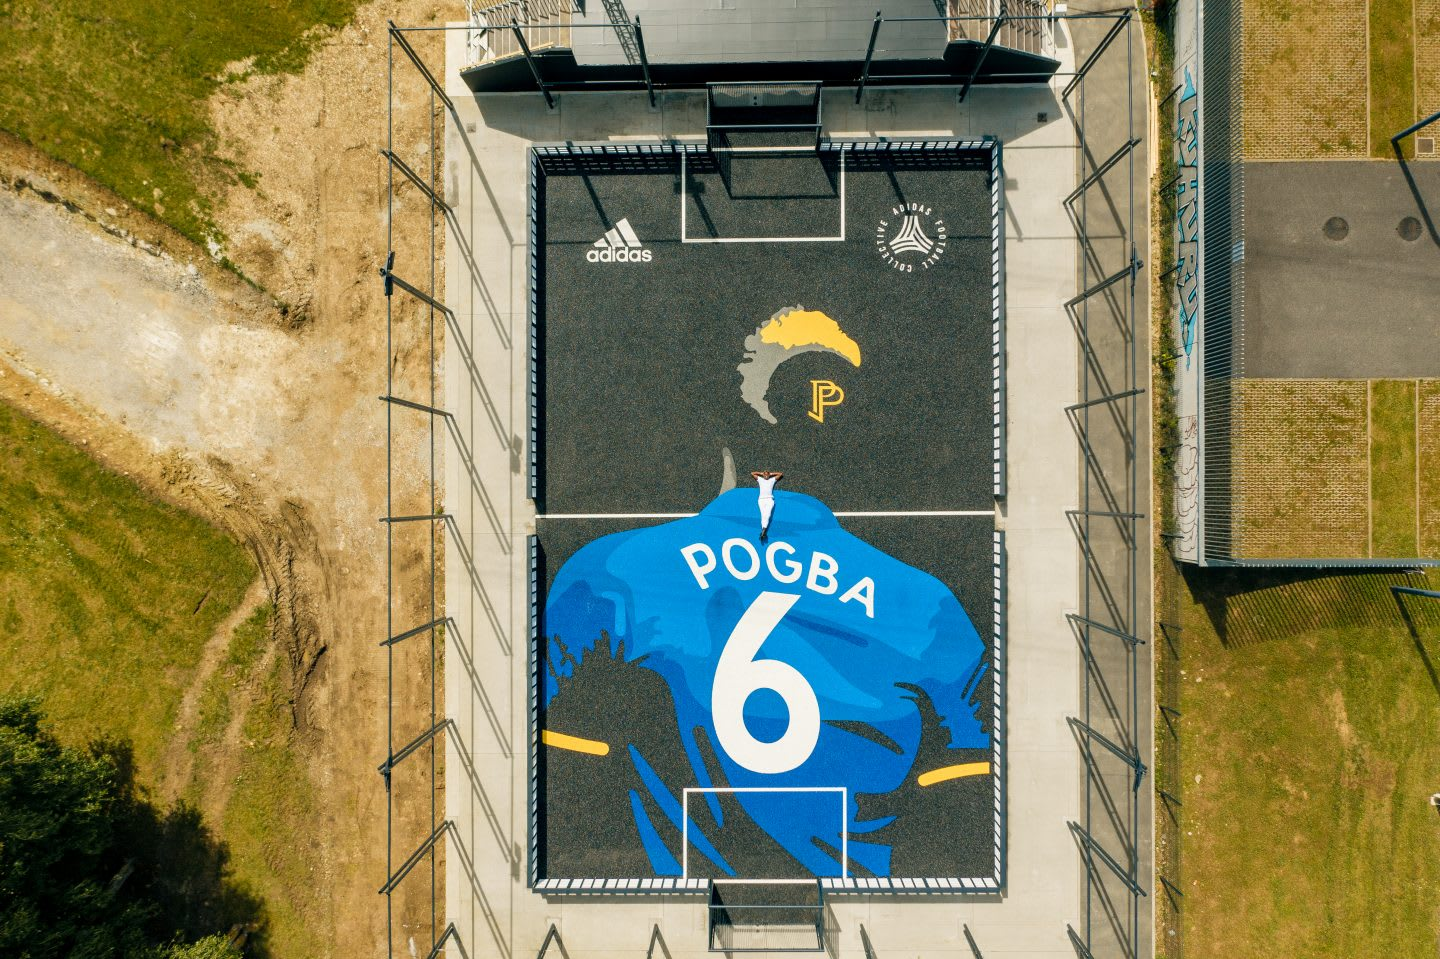 Paul Pogba laying on his own football court. France, star, football, community, possibilities, playing football